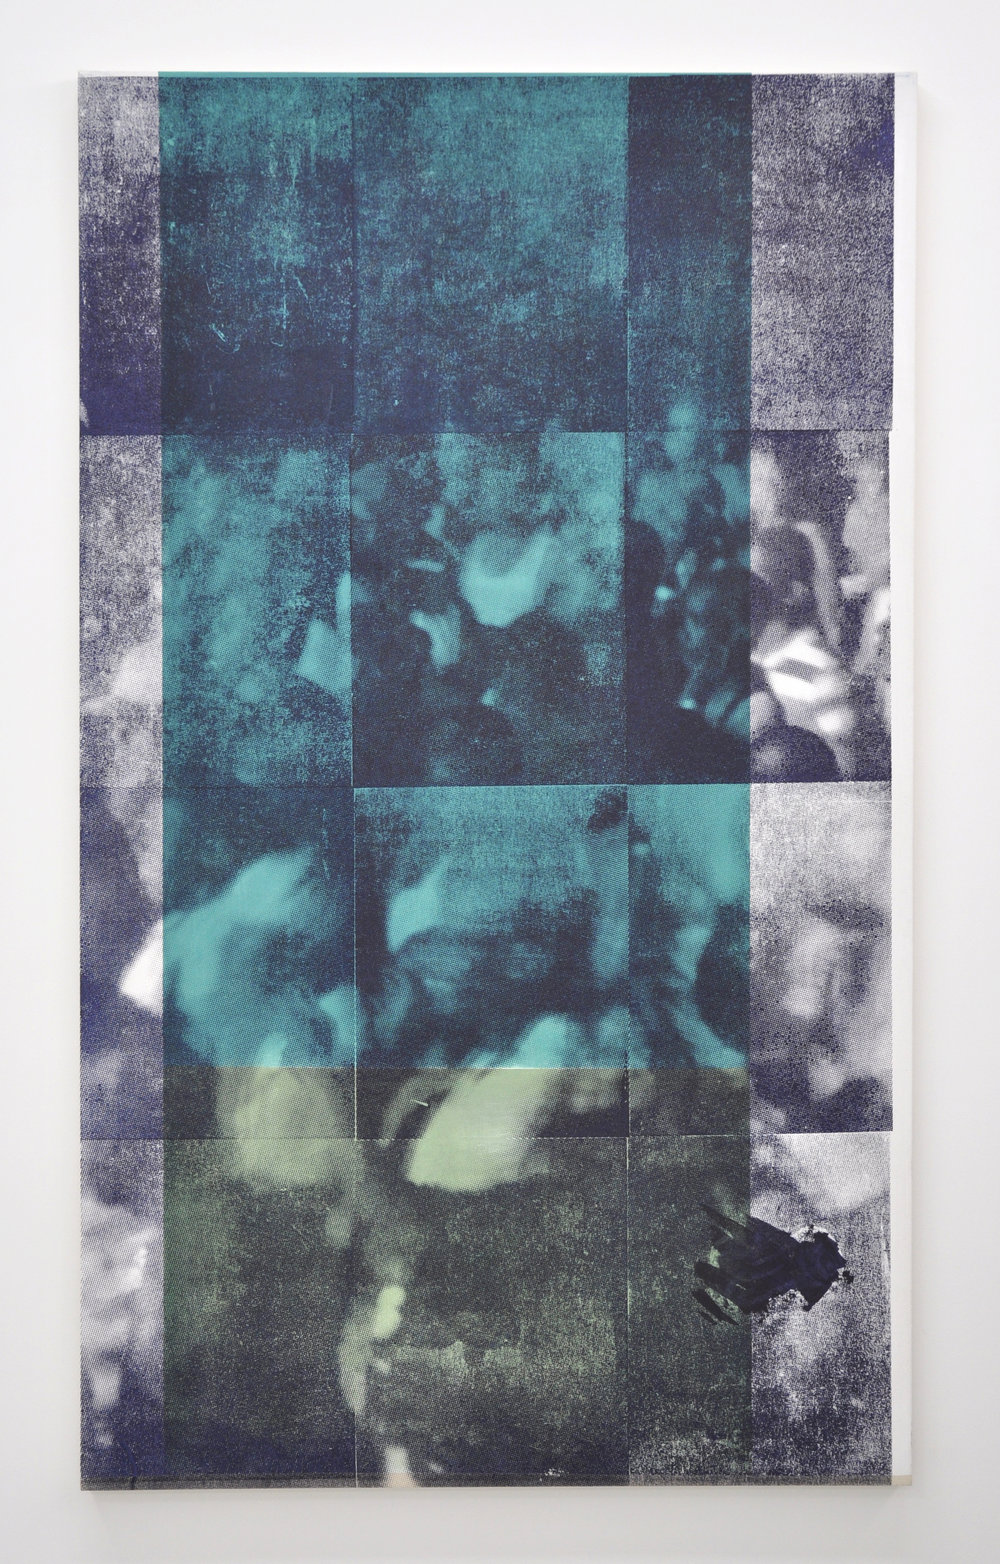 Paul Anthony Smith, Grey Area 3.2, Oil and silkscreen on canvas, 84 x 50 in, 2017